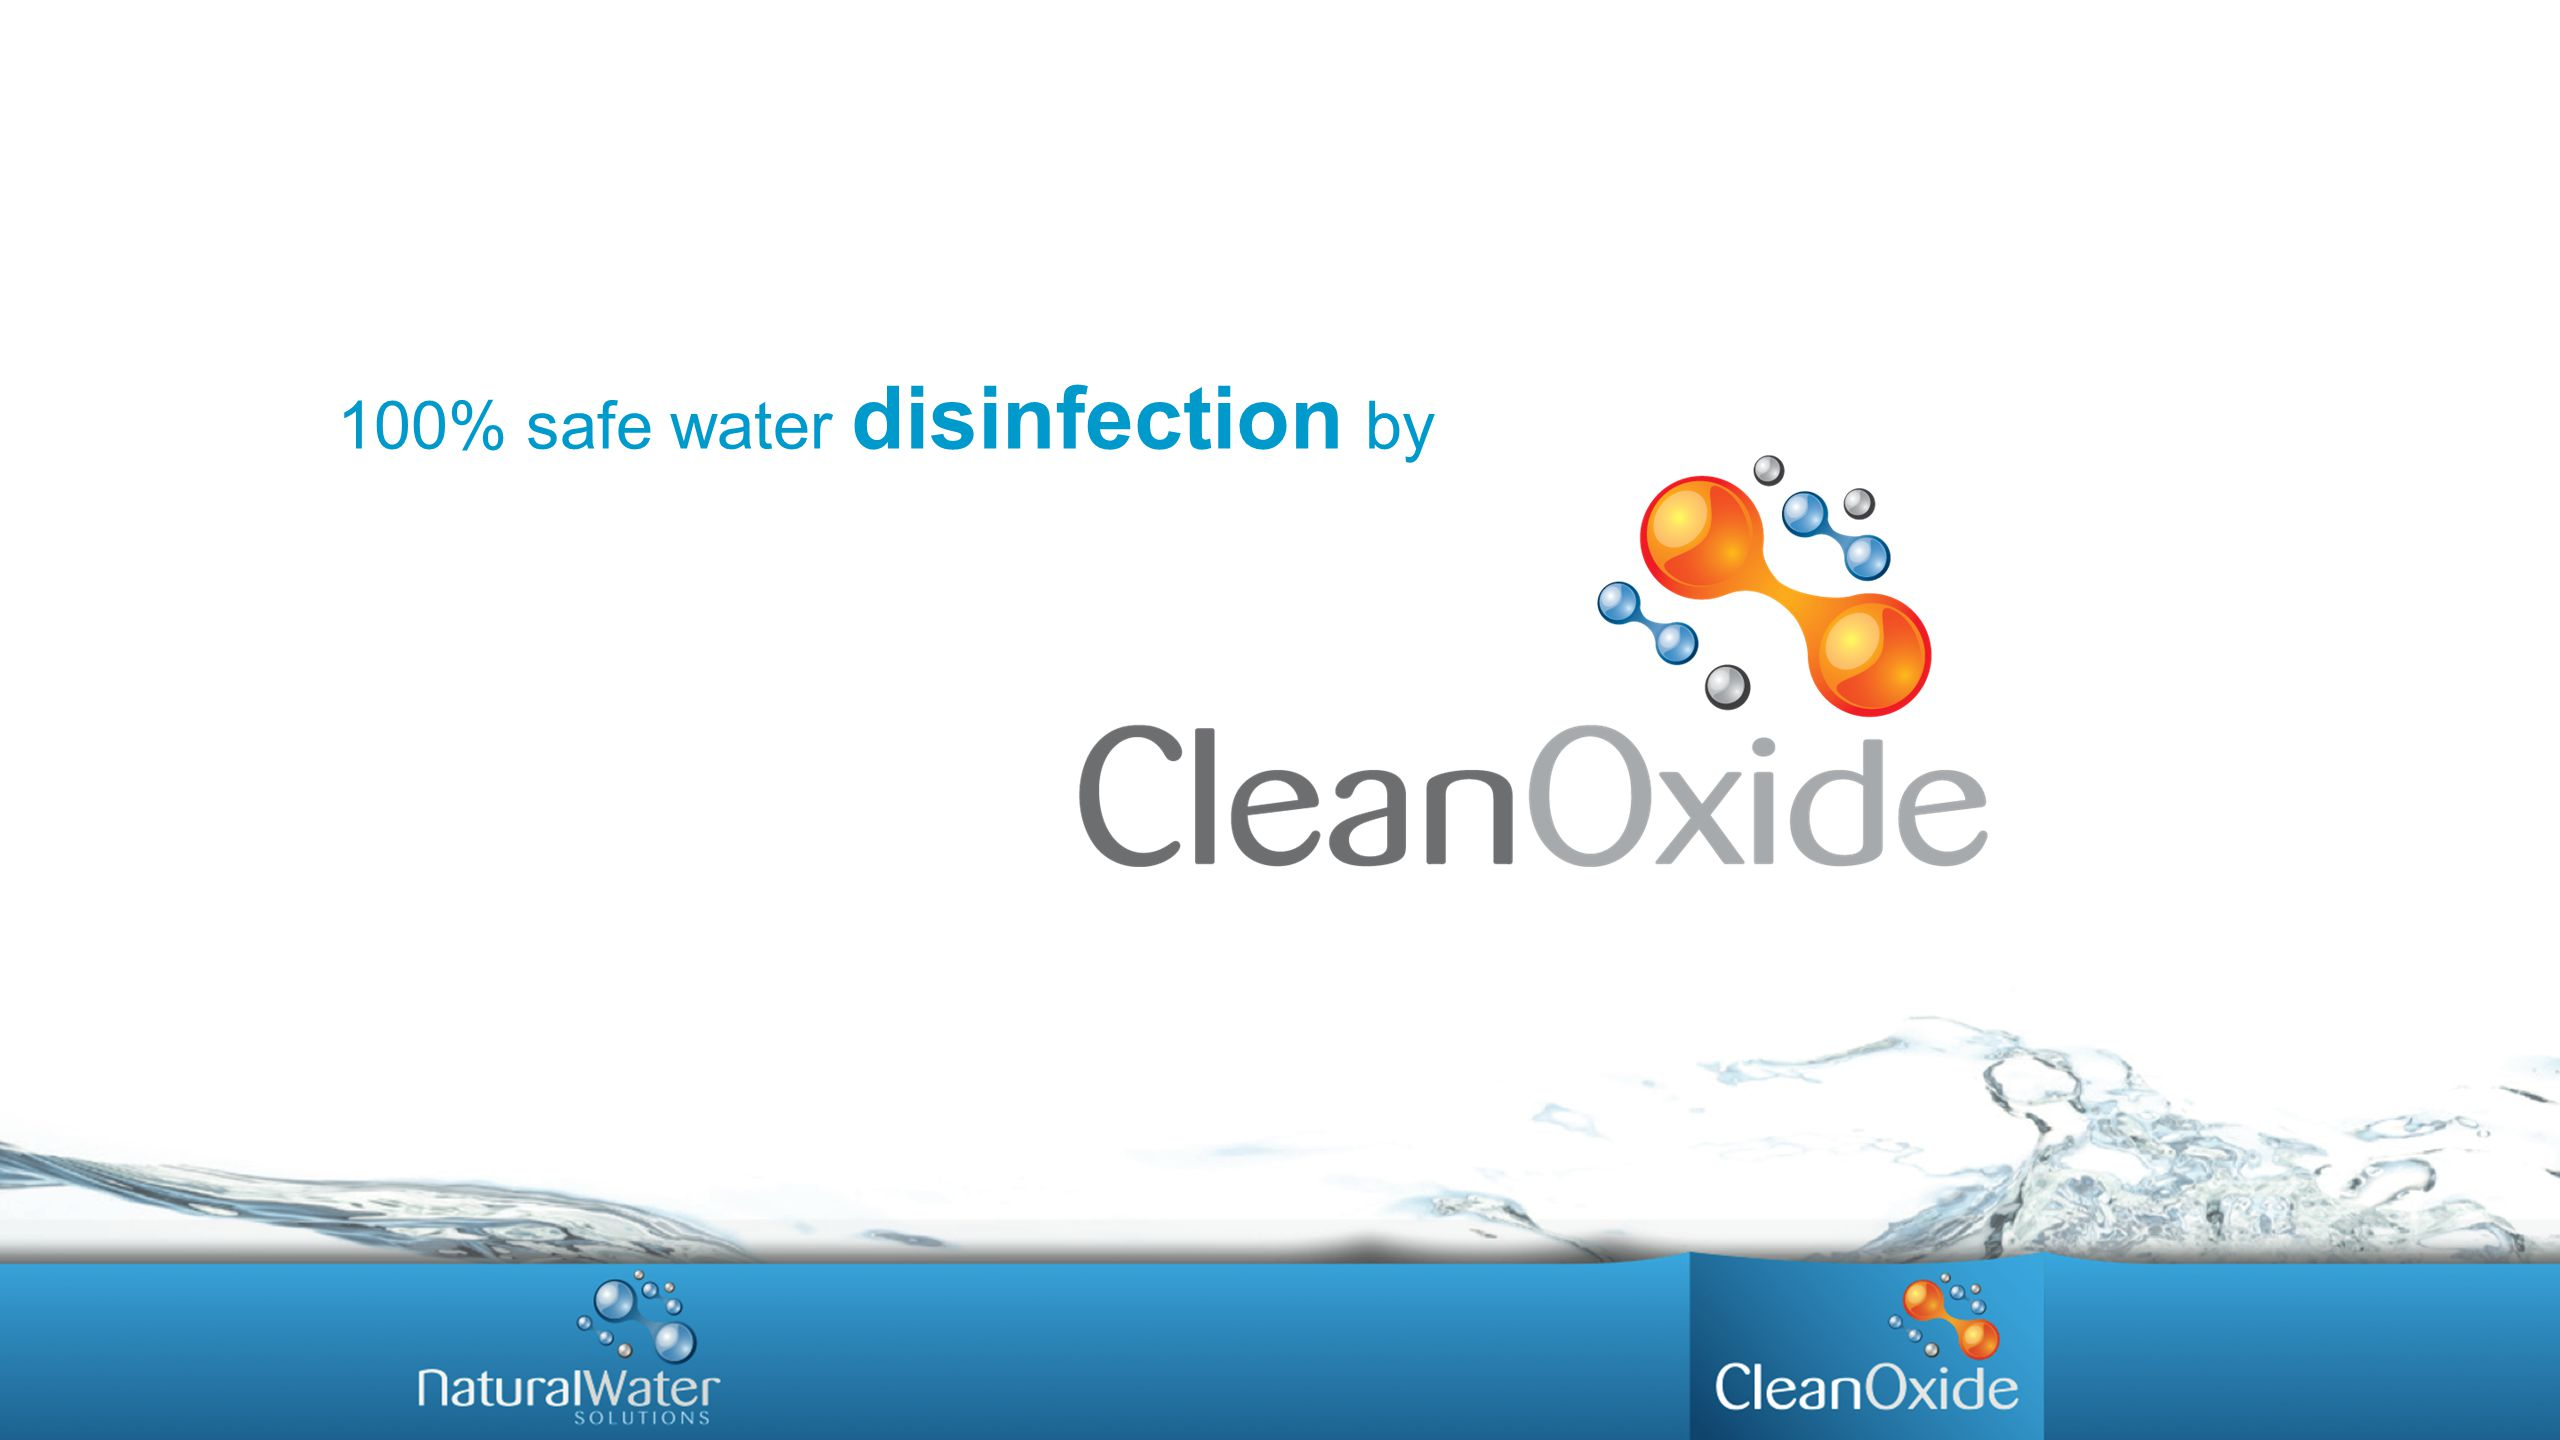 100% safe water disinfection by